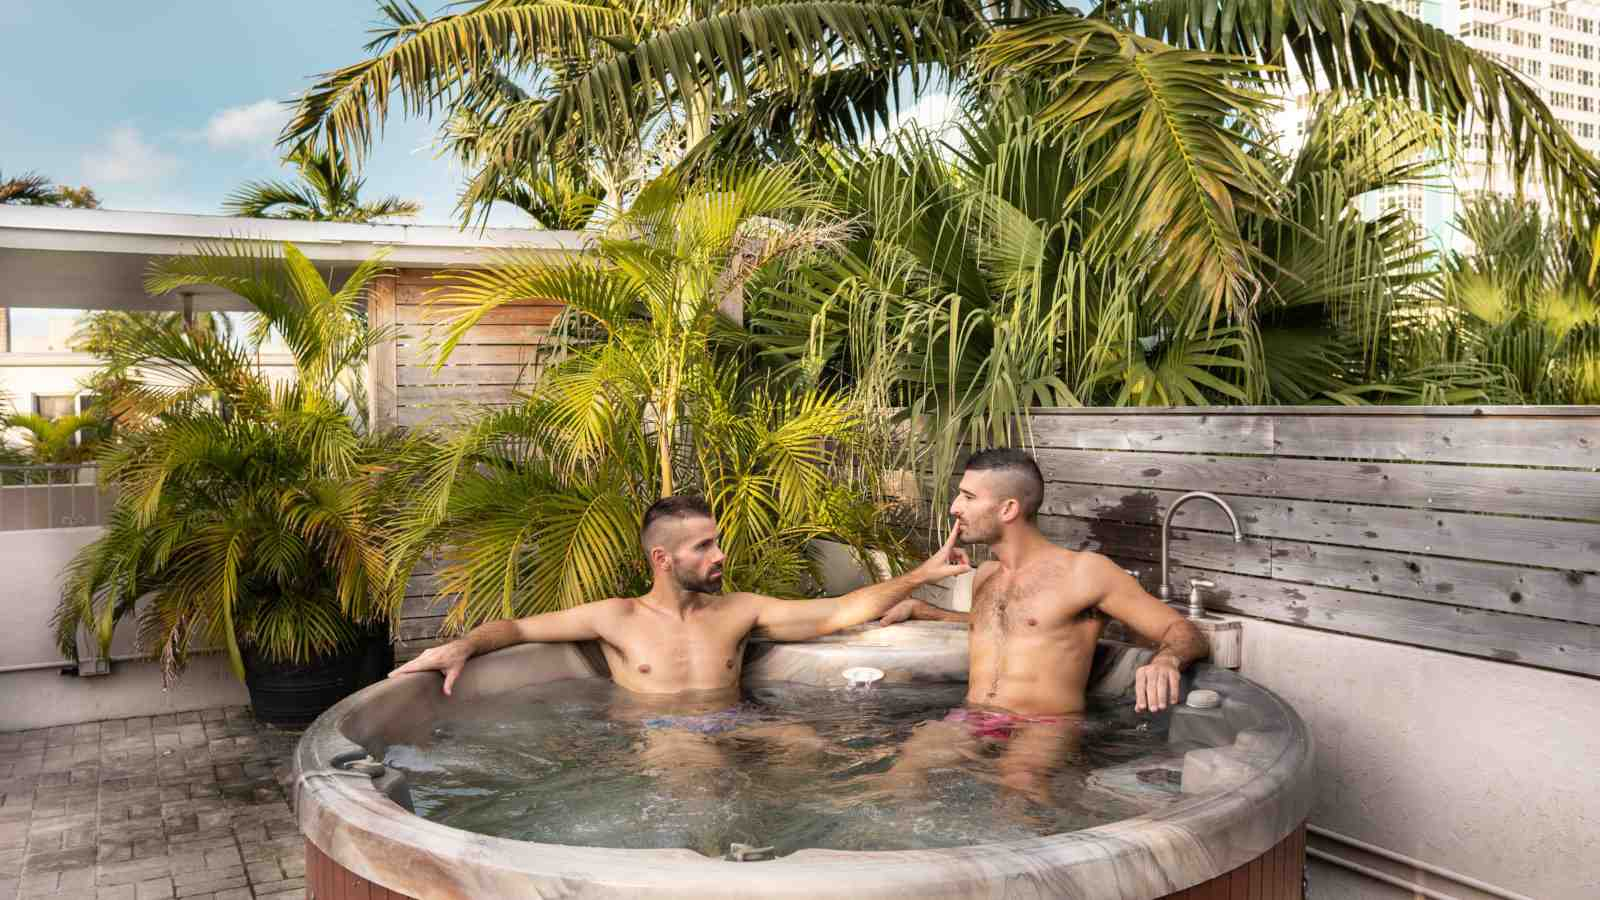 Fort Lauderdale is one of the most gay cities in the US and one of our favourites to visit